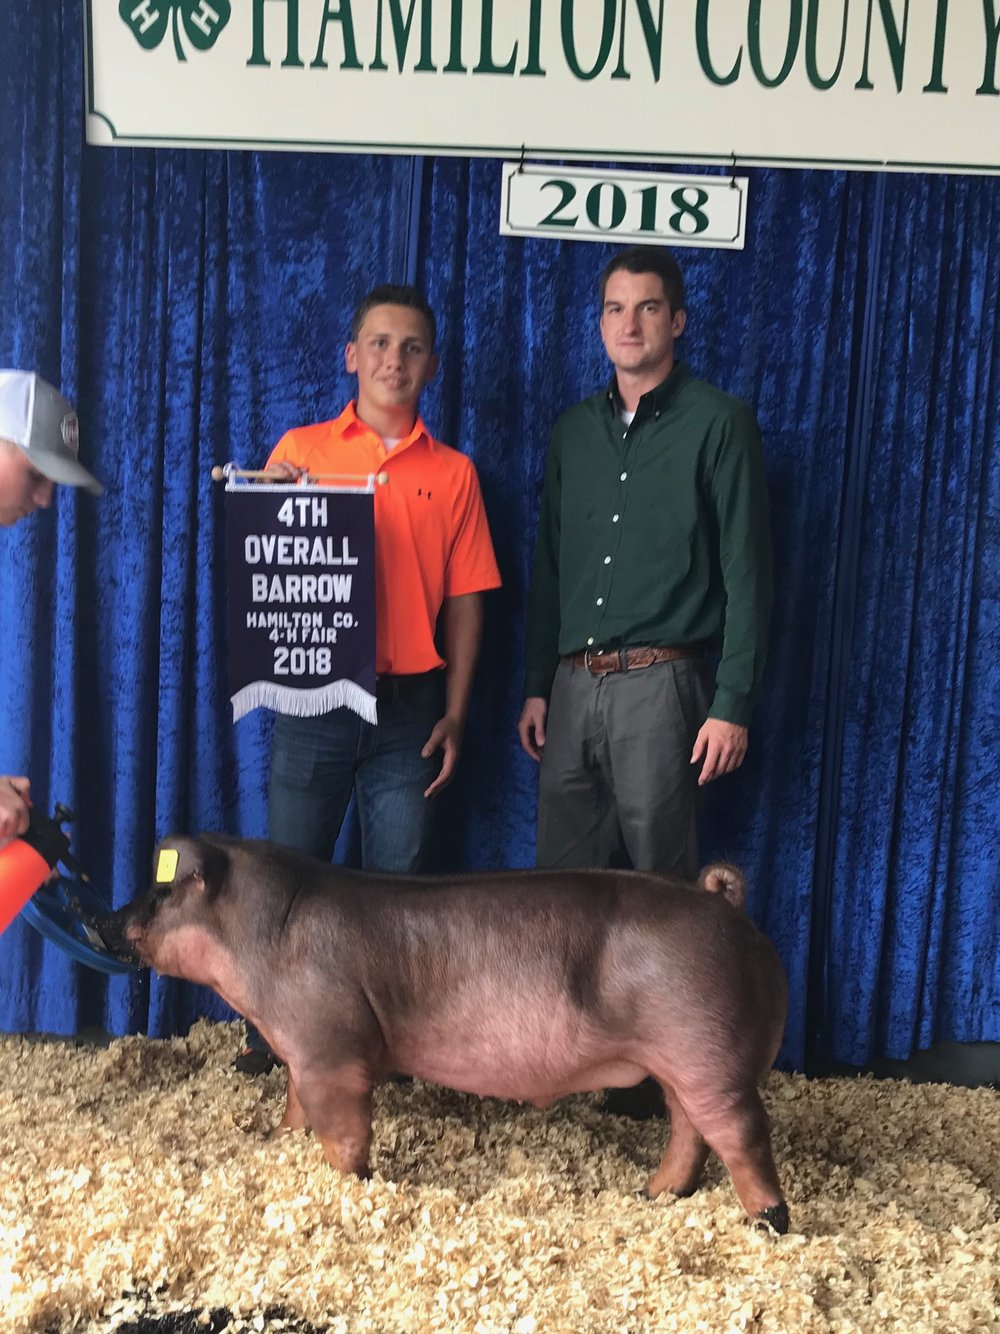 4th Overall Barrow | Hamilton County 4-H Fair 2018